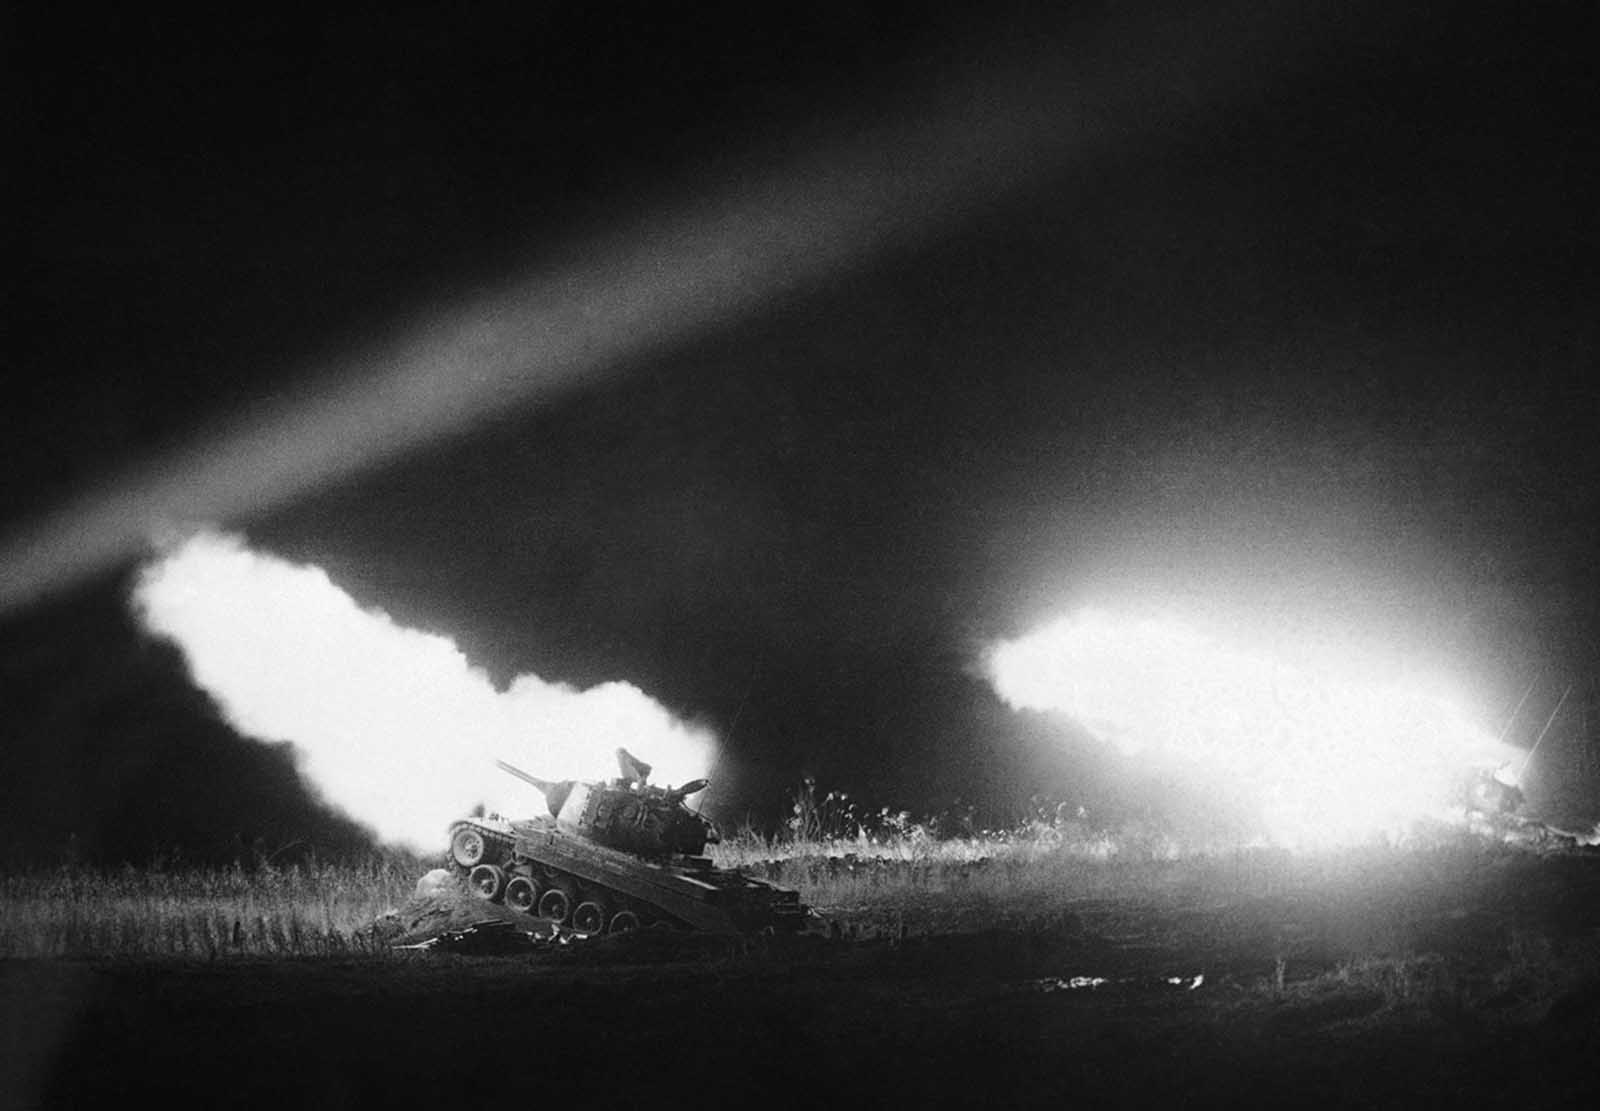 Tanks of the 1st Marine Tank Battalion bark death and devastation into the briefly day-lighted Korean night, as Marines fire a night mission at supply installations somewhere in Korea on January 16, 1952.